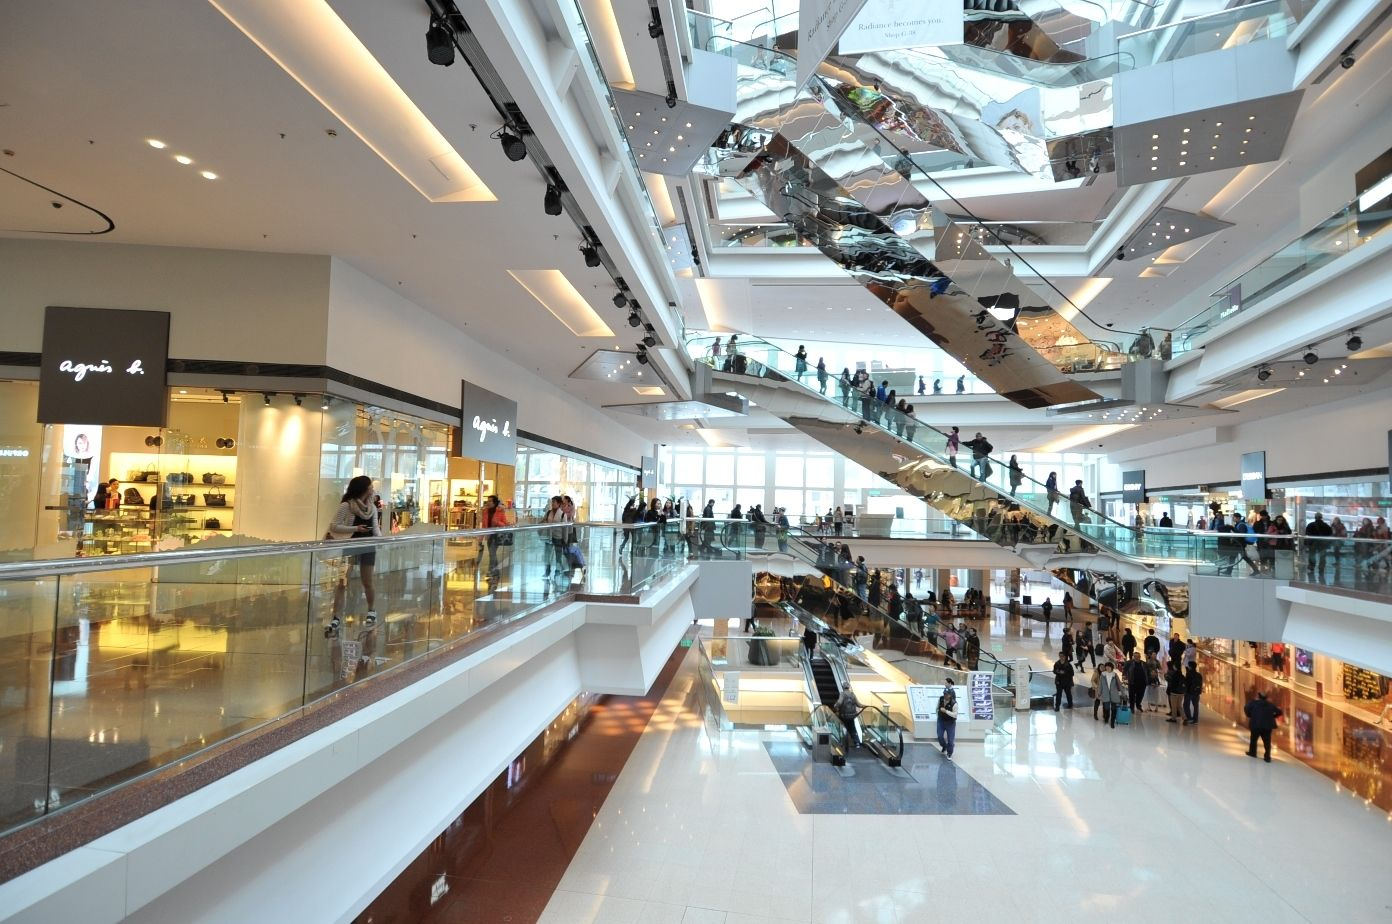 The Best Shopping Mall – What To Expect?